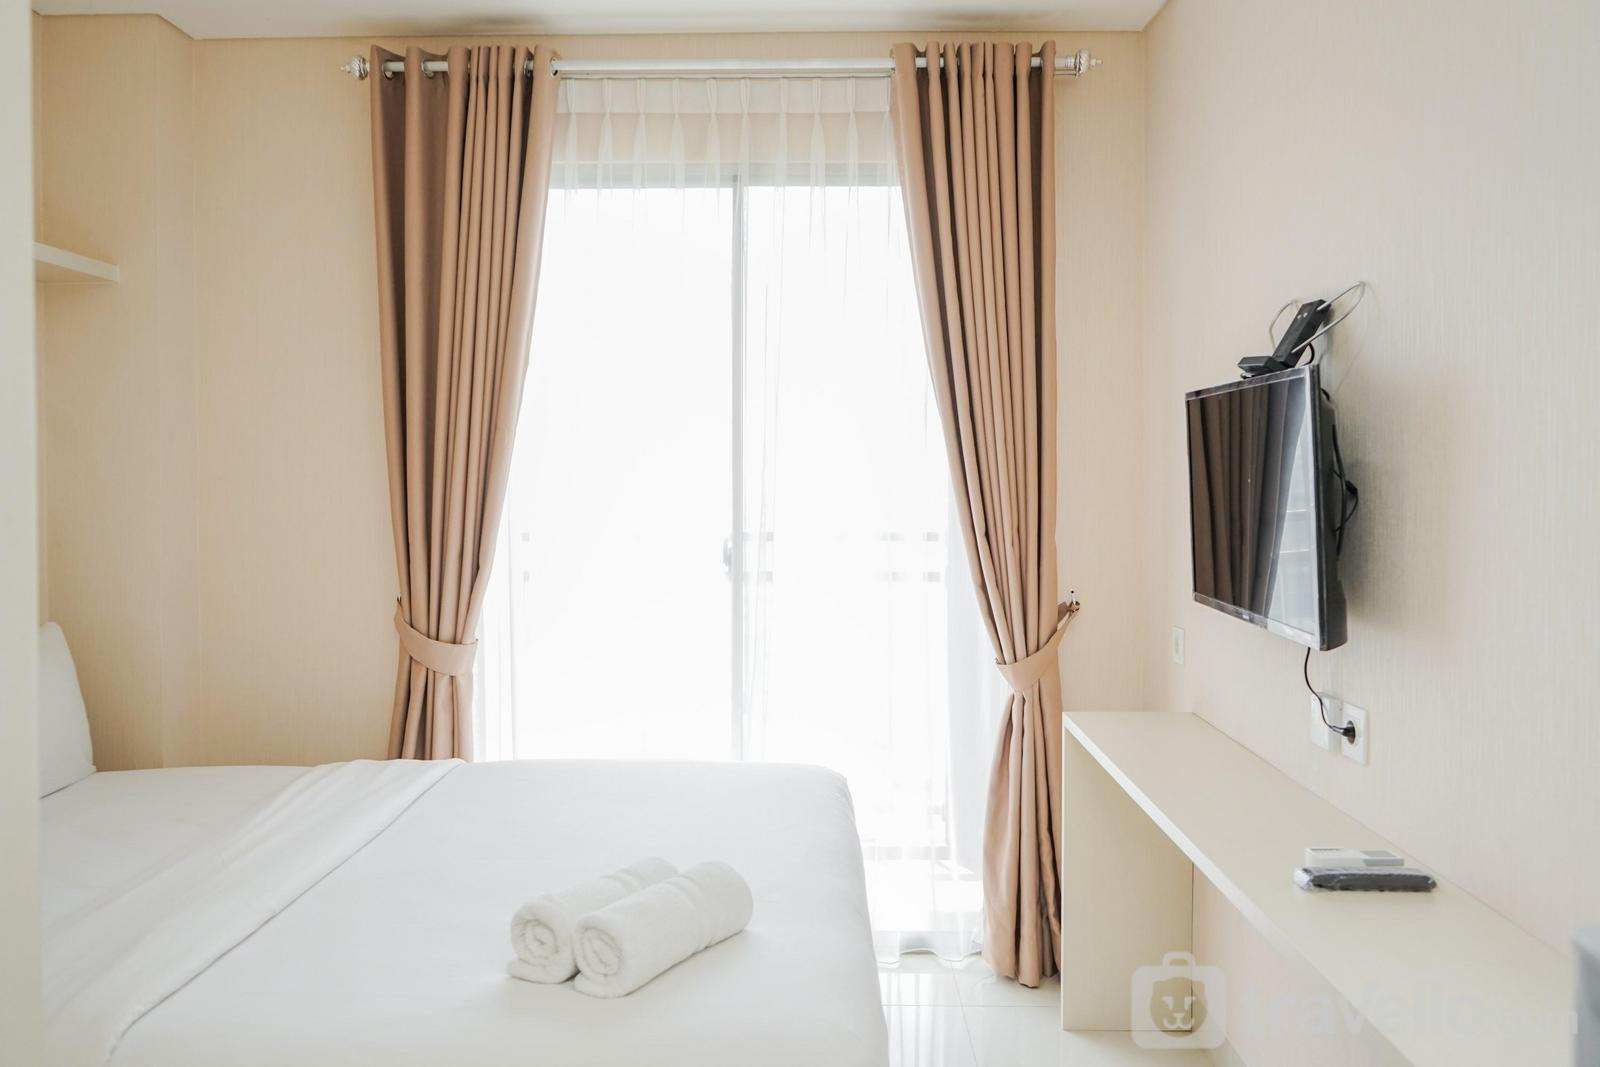 Apartemen Springwood Residence Tangerang - Minimalist and Relaxing Studio Apartment at Springwood Residence By Travelio